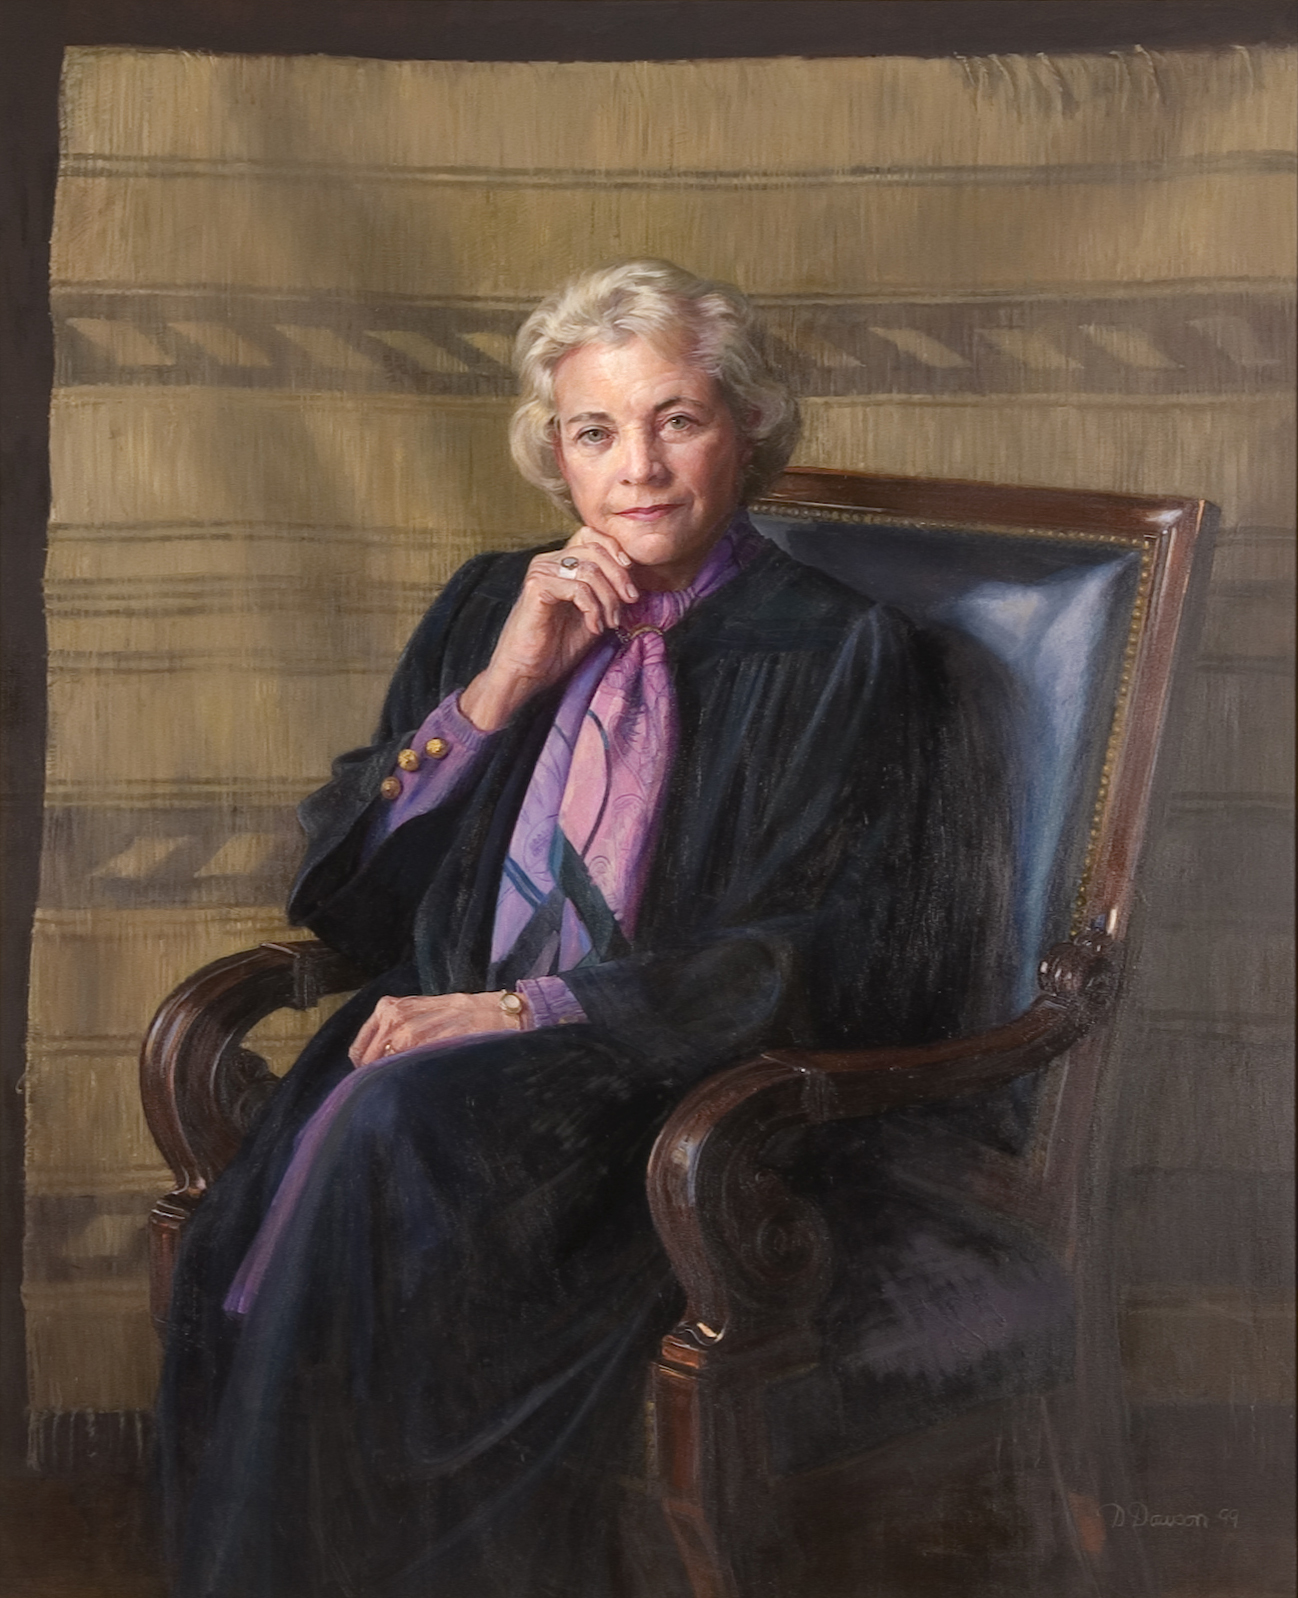 Sandra Day O'Connor sitting on the chair. She is wearing a dress of judge.